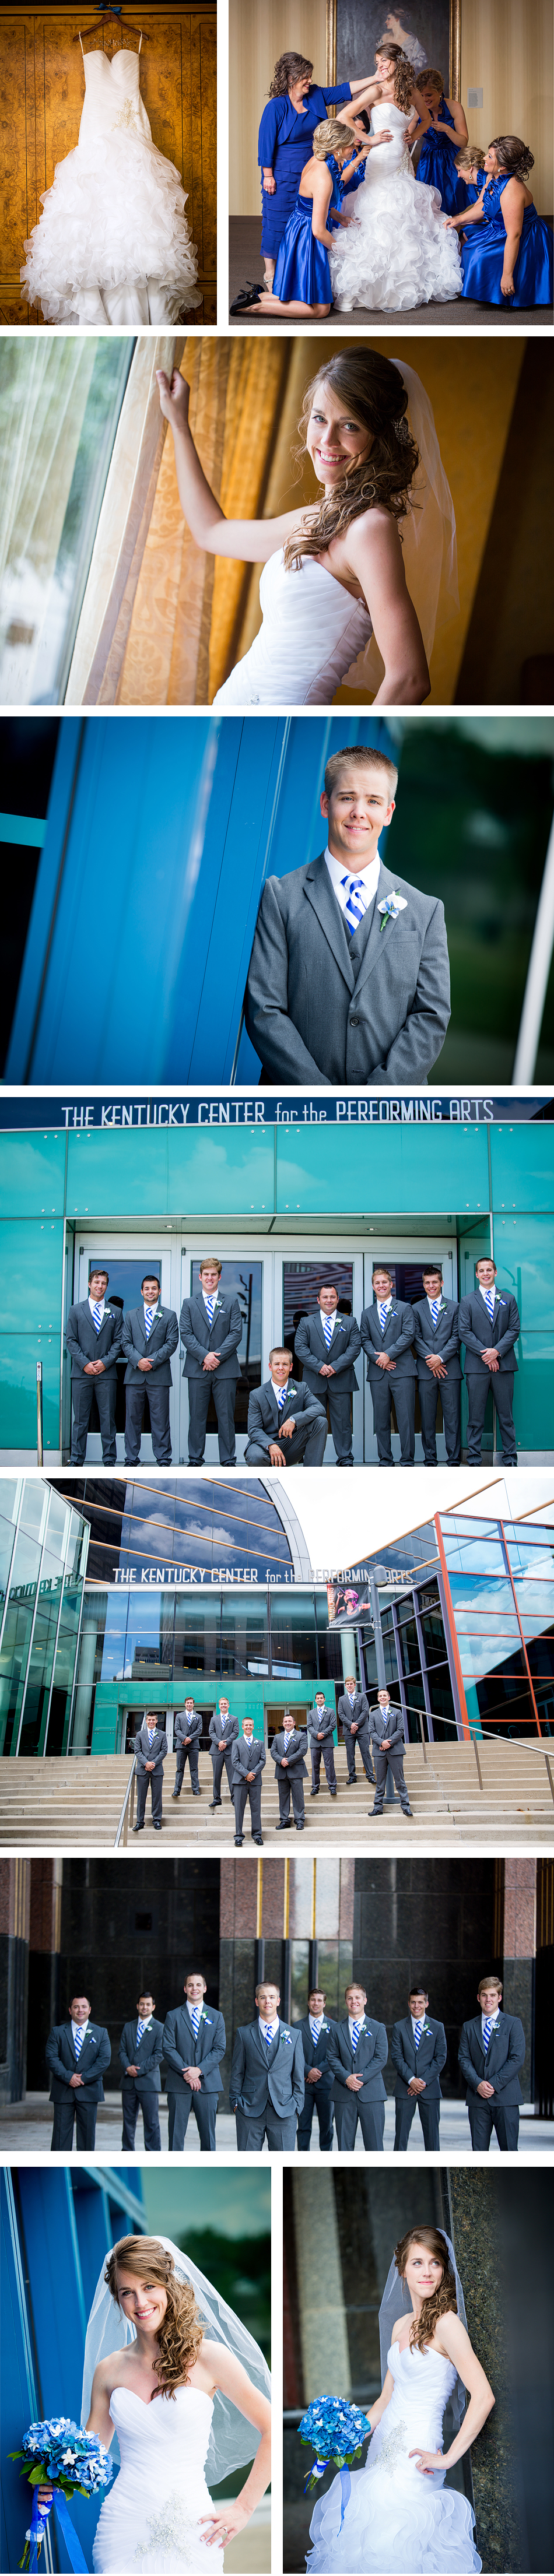 Kentucky Center for the Arts Wedding Photos